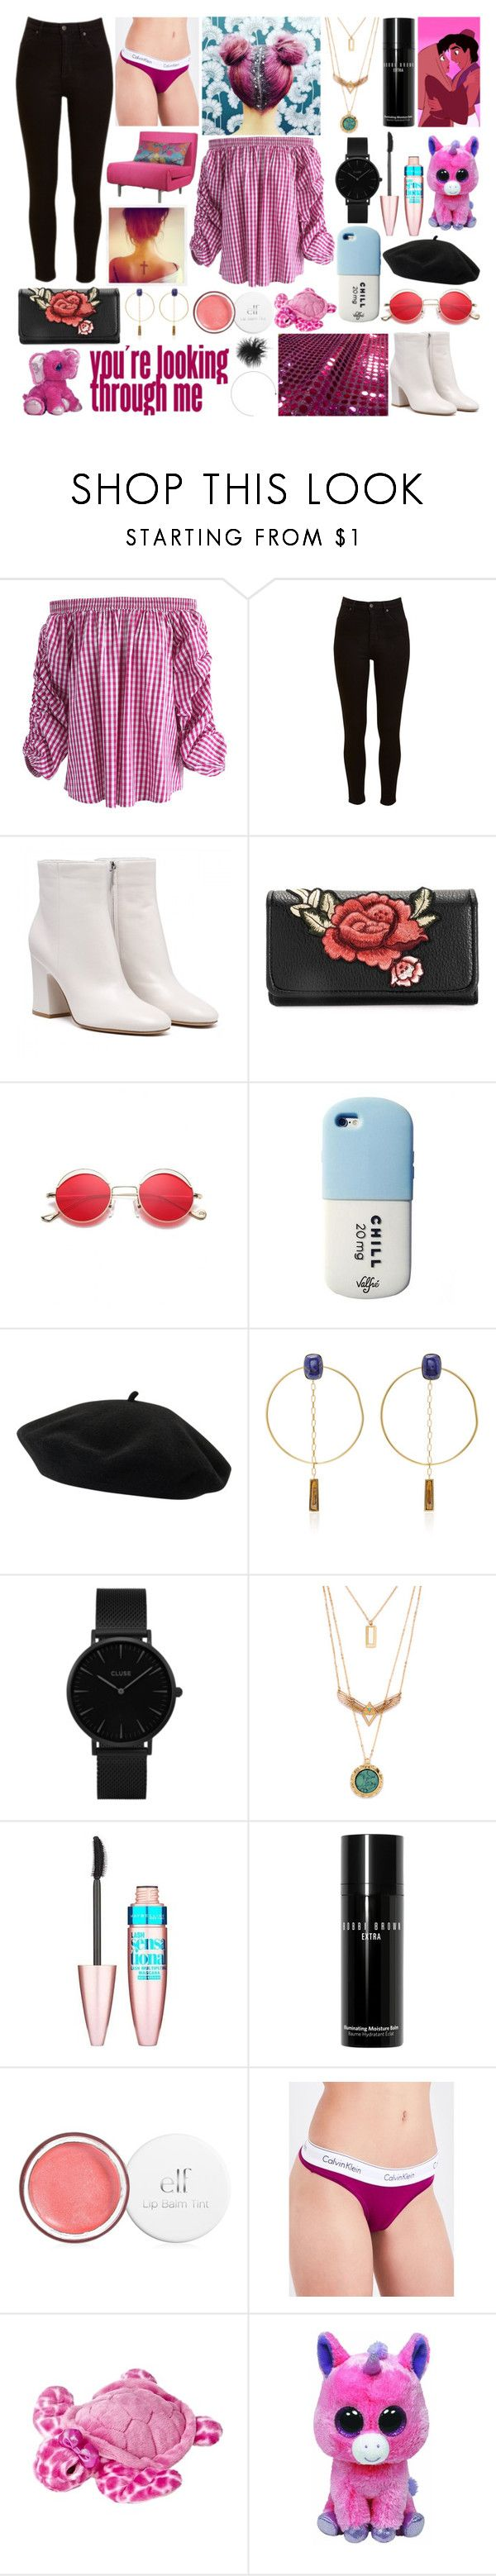 """""""💤"""" by anette-rivera ❤ liked on Polyvore featuring Chicwish, Lee, Goorin, Isabel Marant, CLUSE, Maybelline, Bobbi Brown Cosmetics and Calvin Klein"""